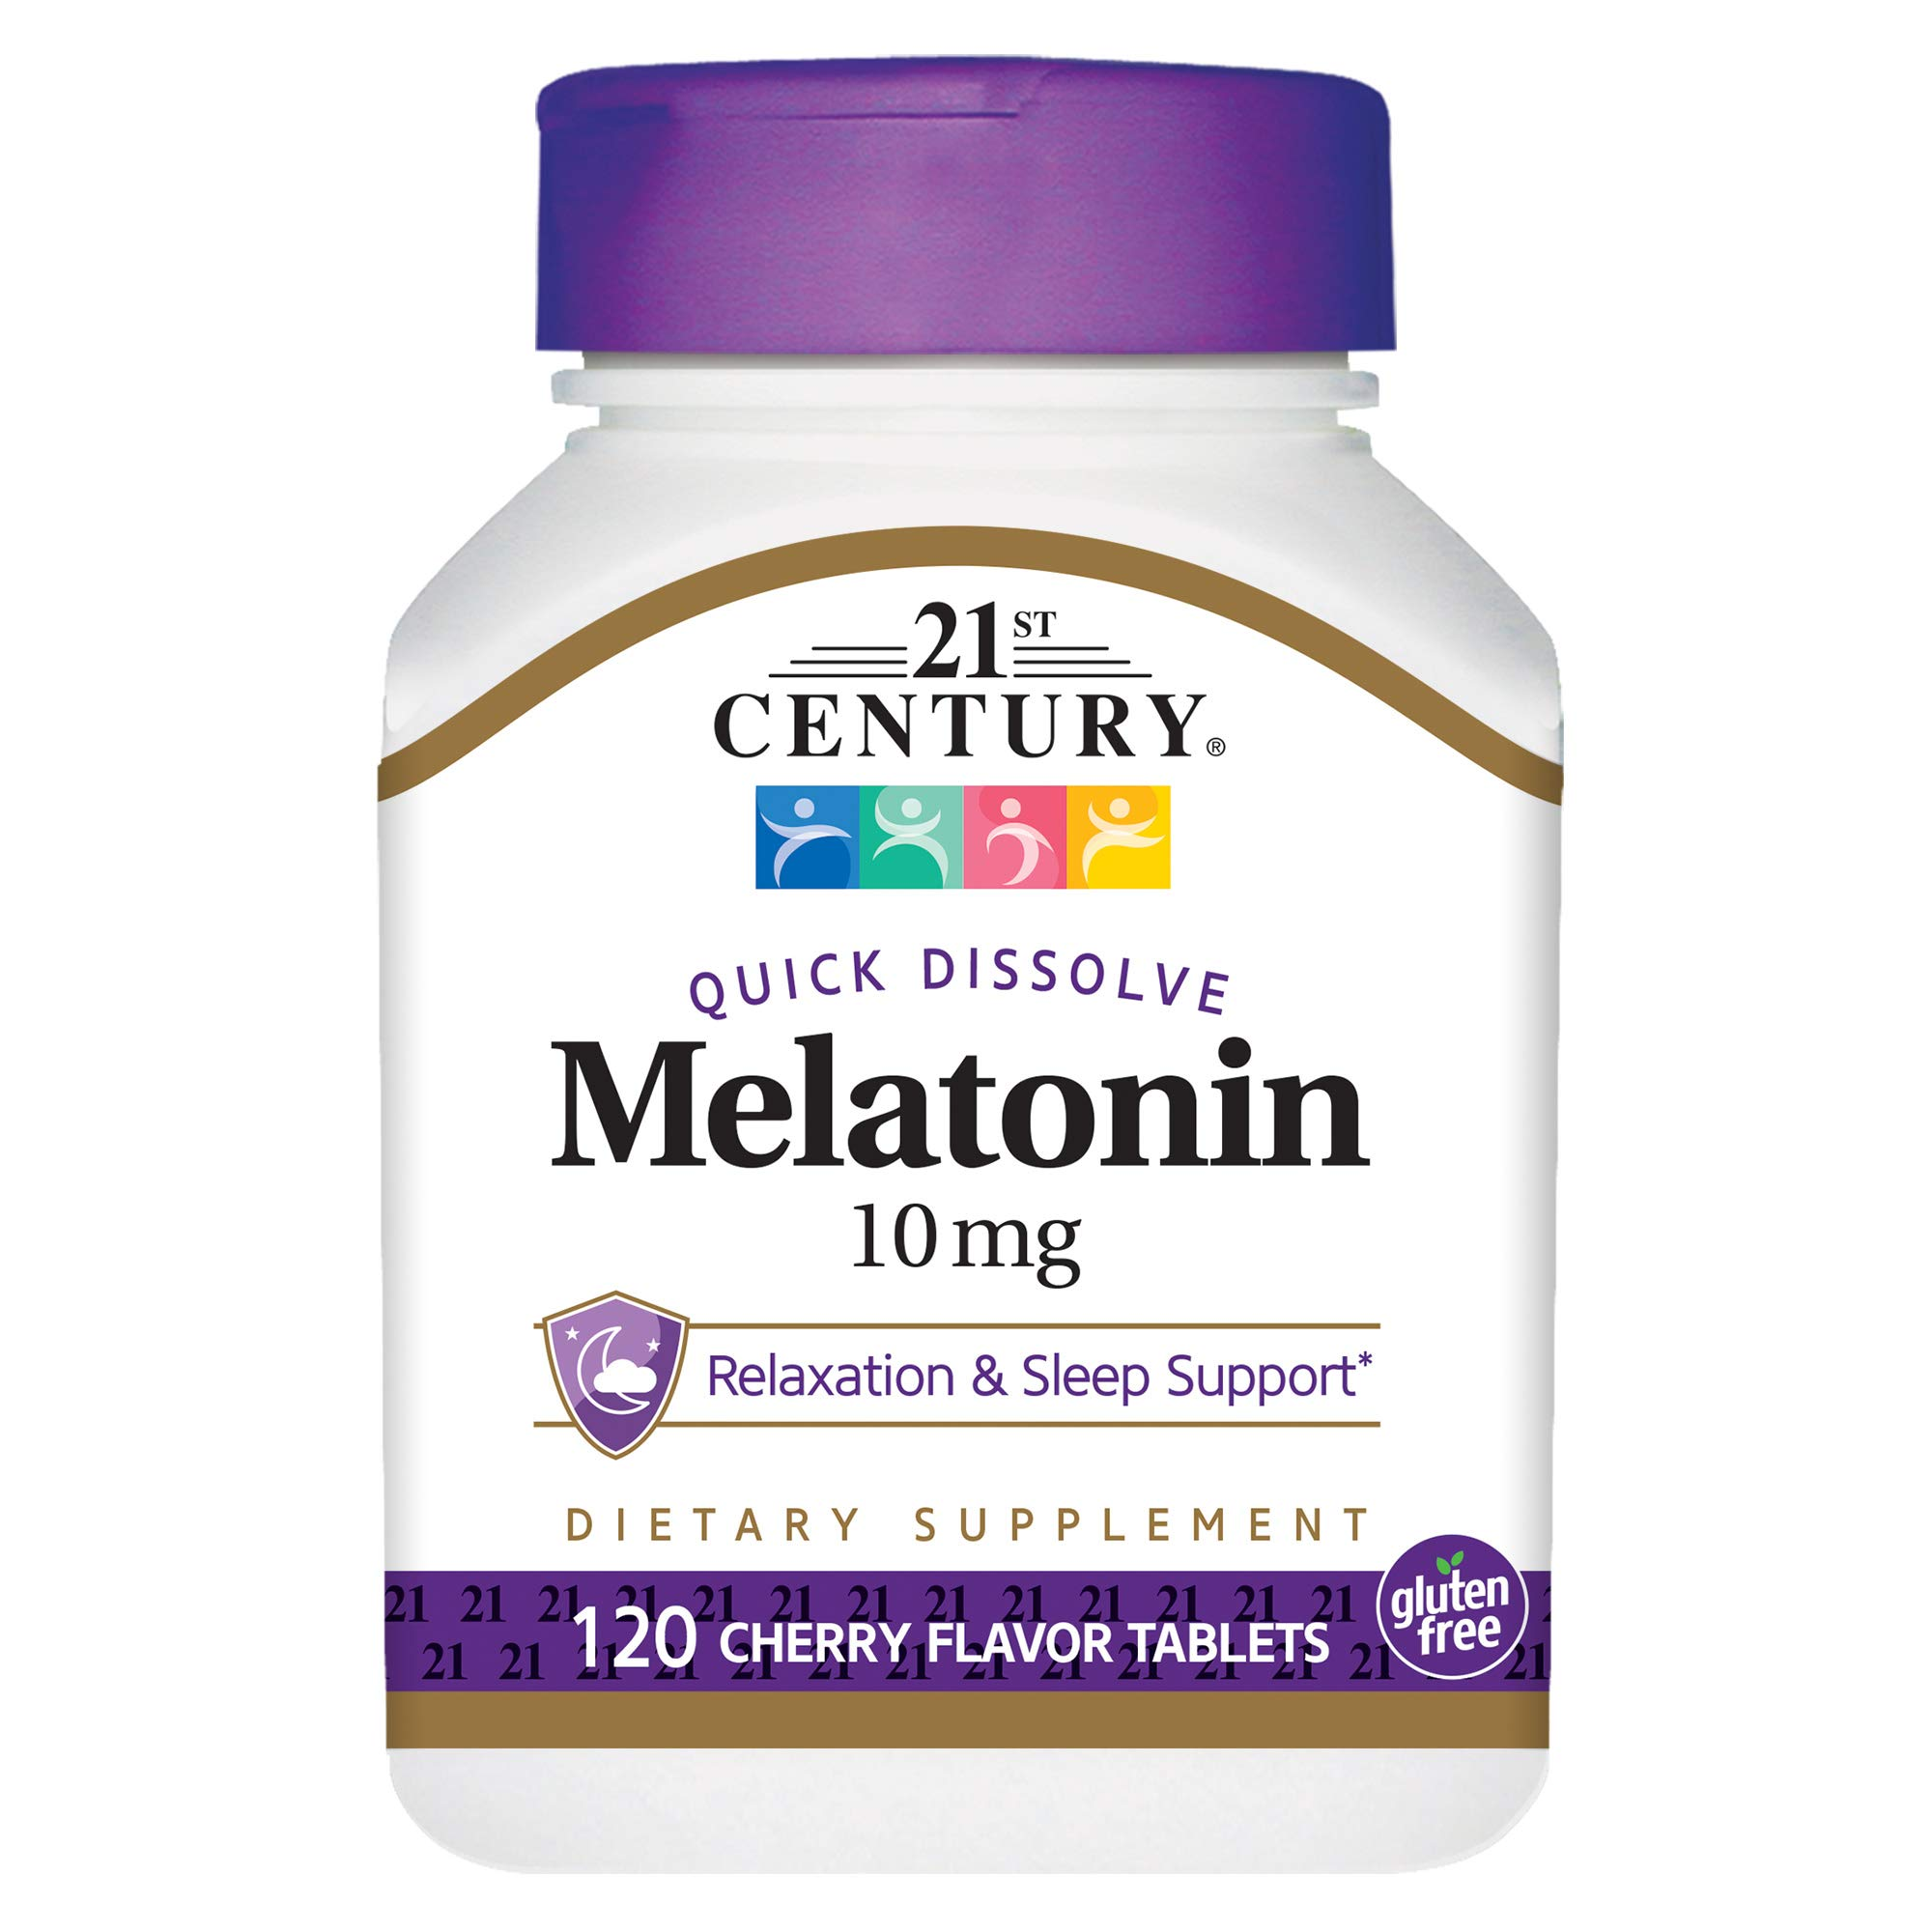 Amazon.com: 21st Century, Melatonin, Cherry Flavor, 10 mg, 120 Quick ...